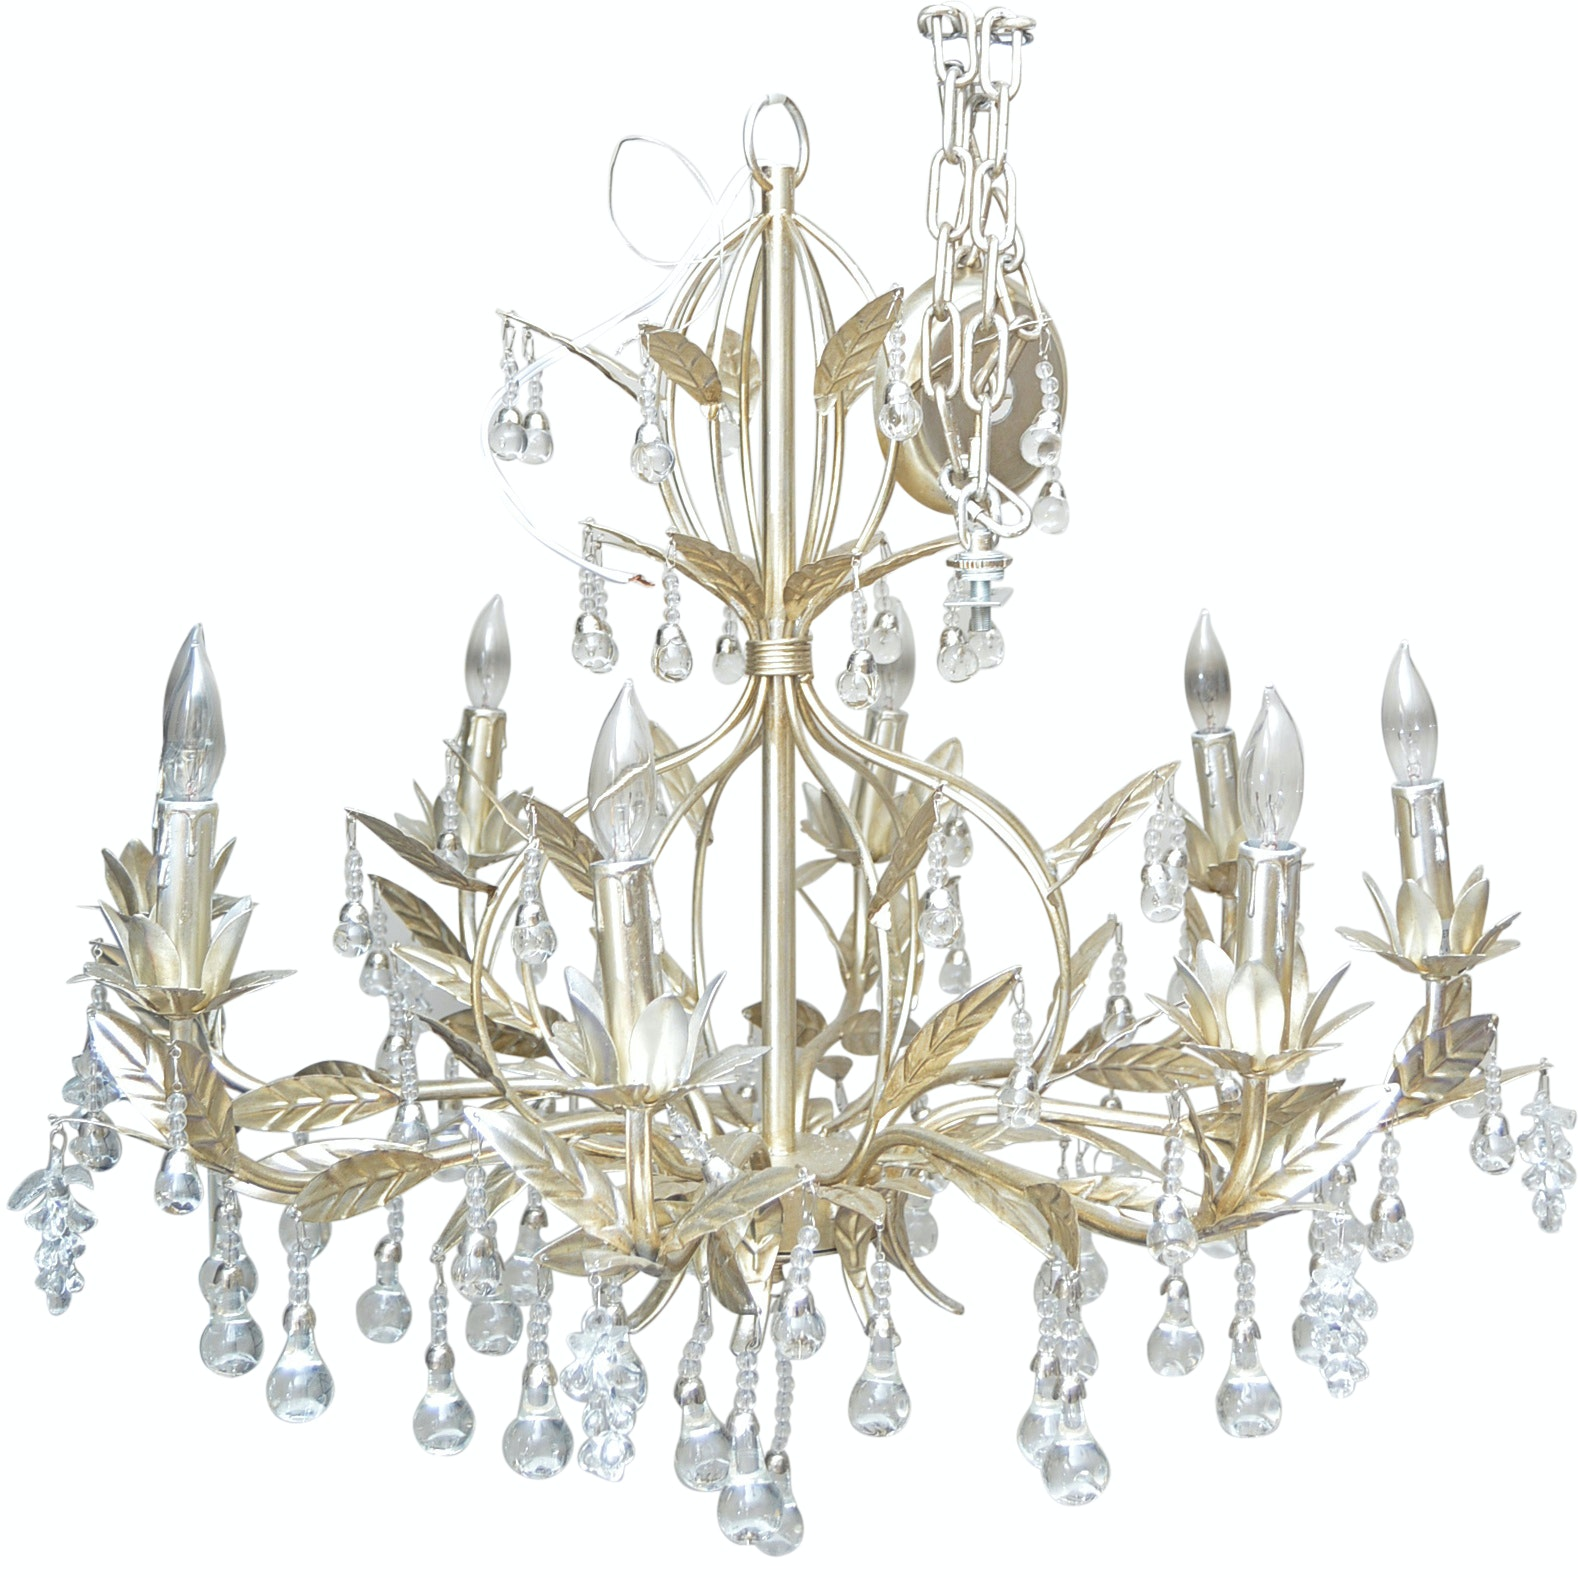 Hollywood Regency Style Eight-Arm Chandelier